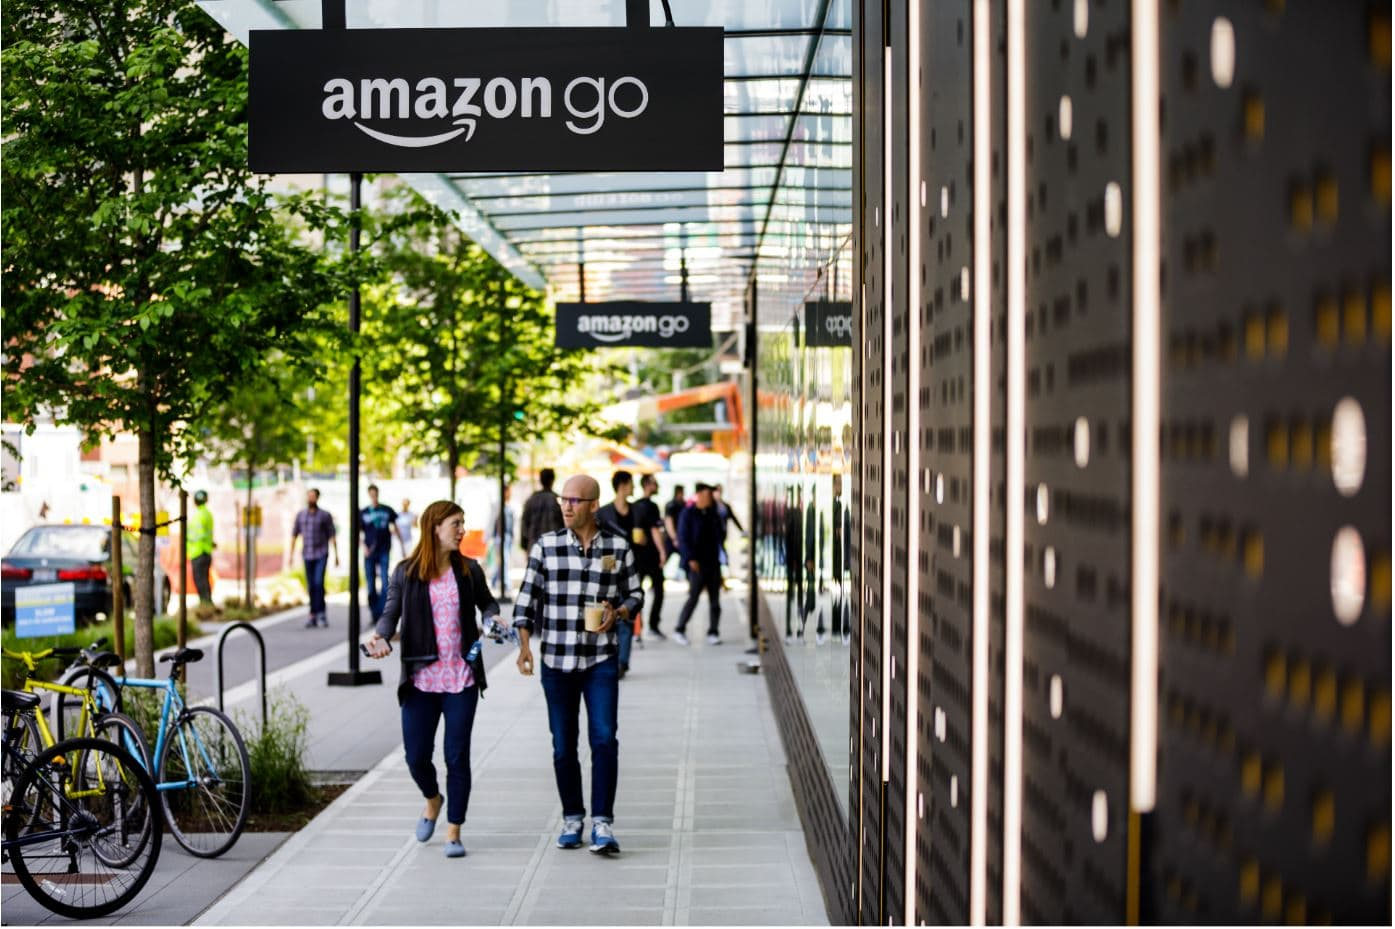 Amazon making a push for Cashierless GO Stores